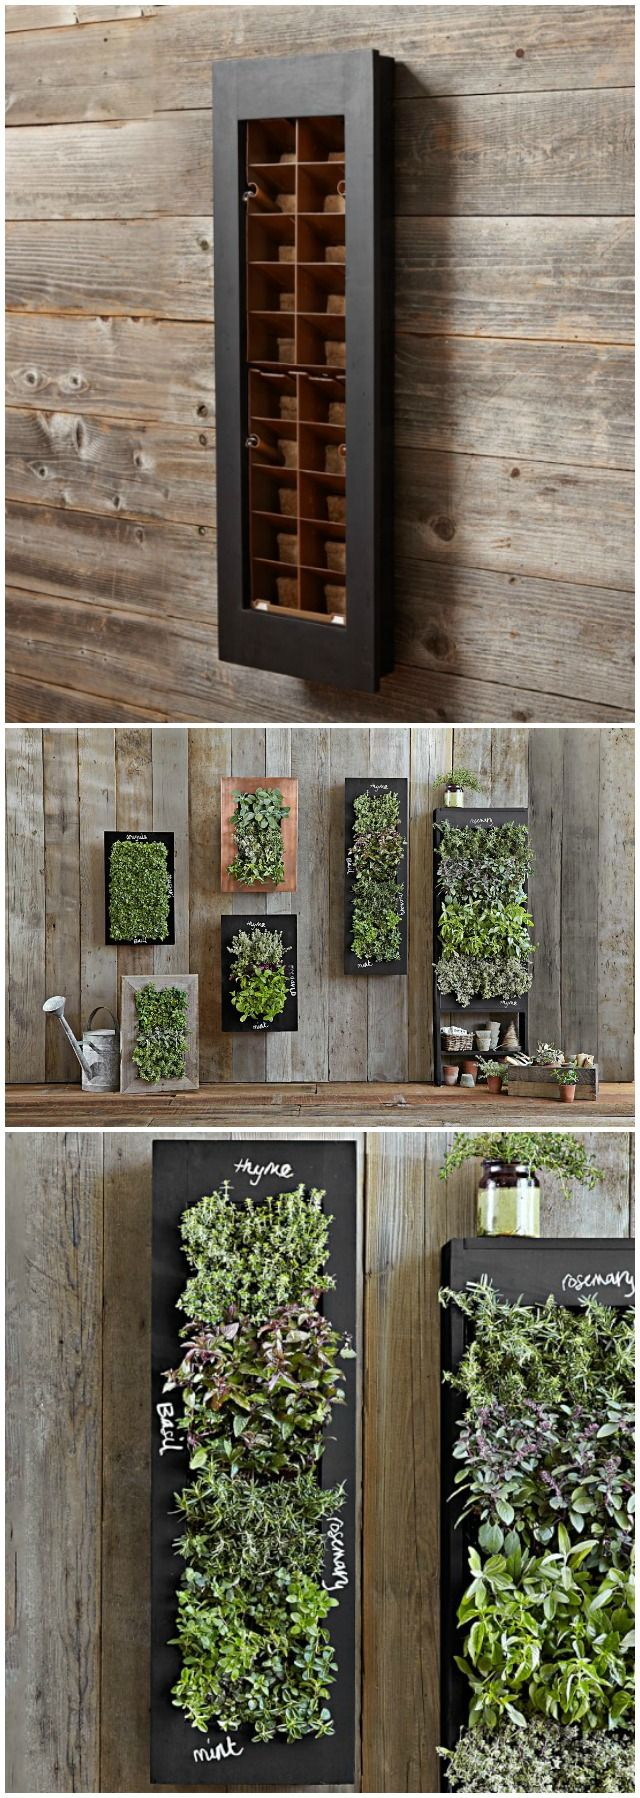 RECTANGULAR CHALKBOARD WALL PLANTER Bring your